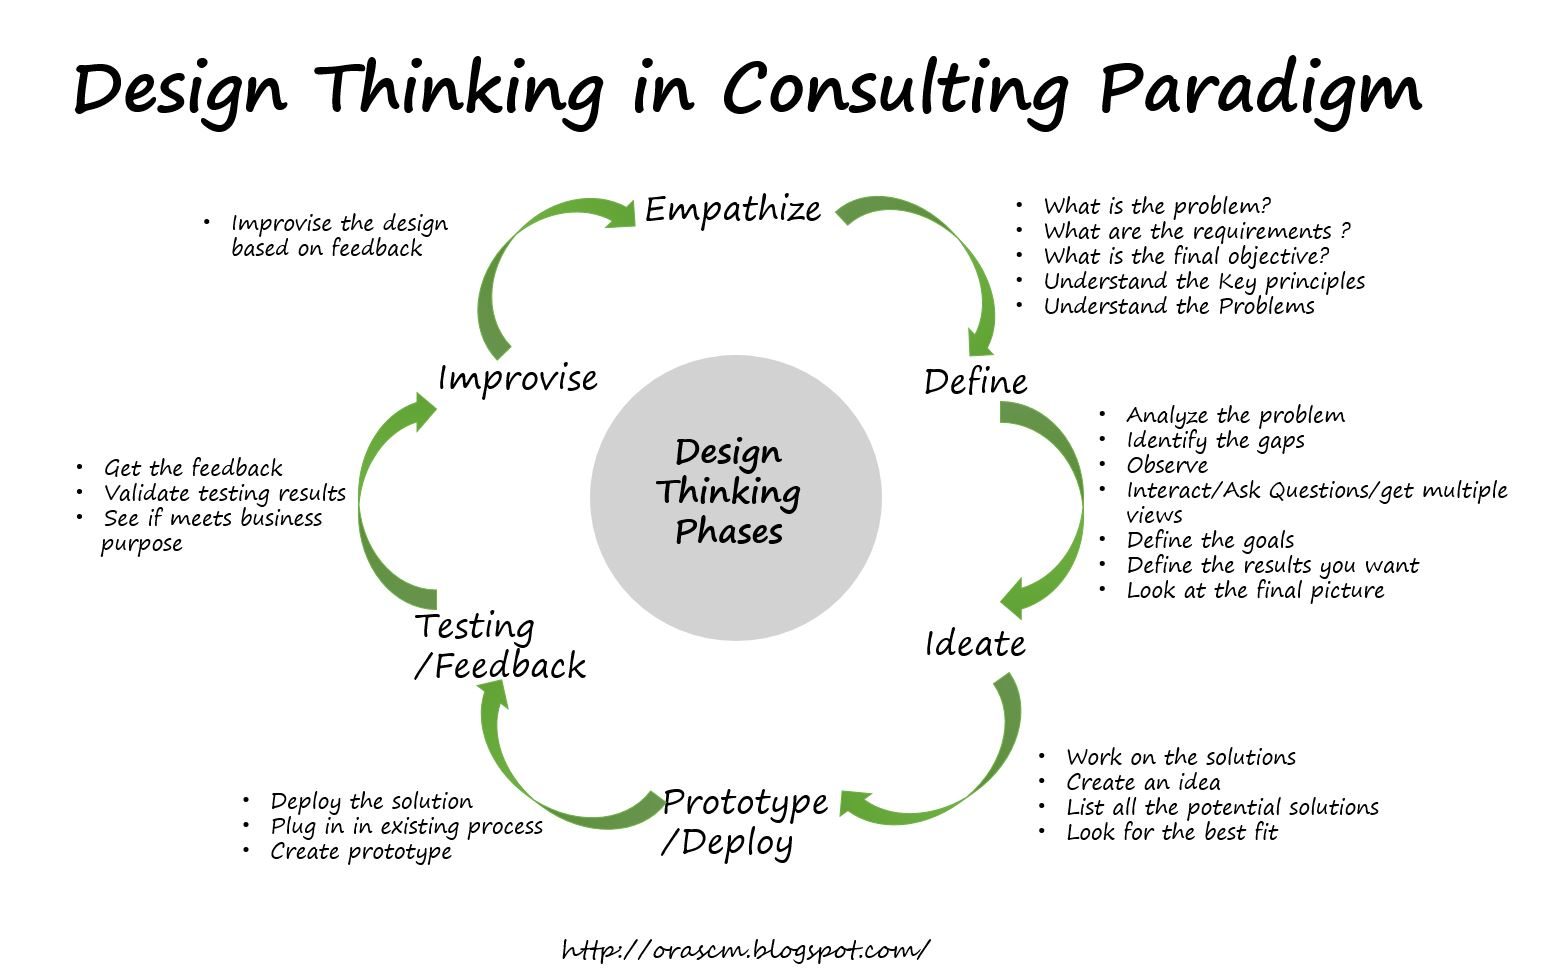 Consulting phases diagram auto electrical wiring diagram for Design thinking consulting